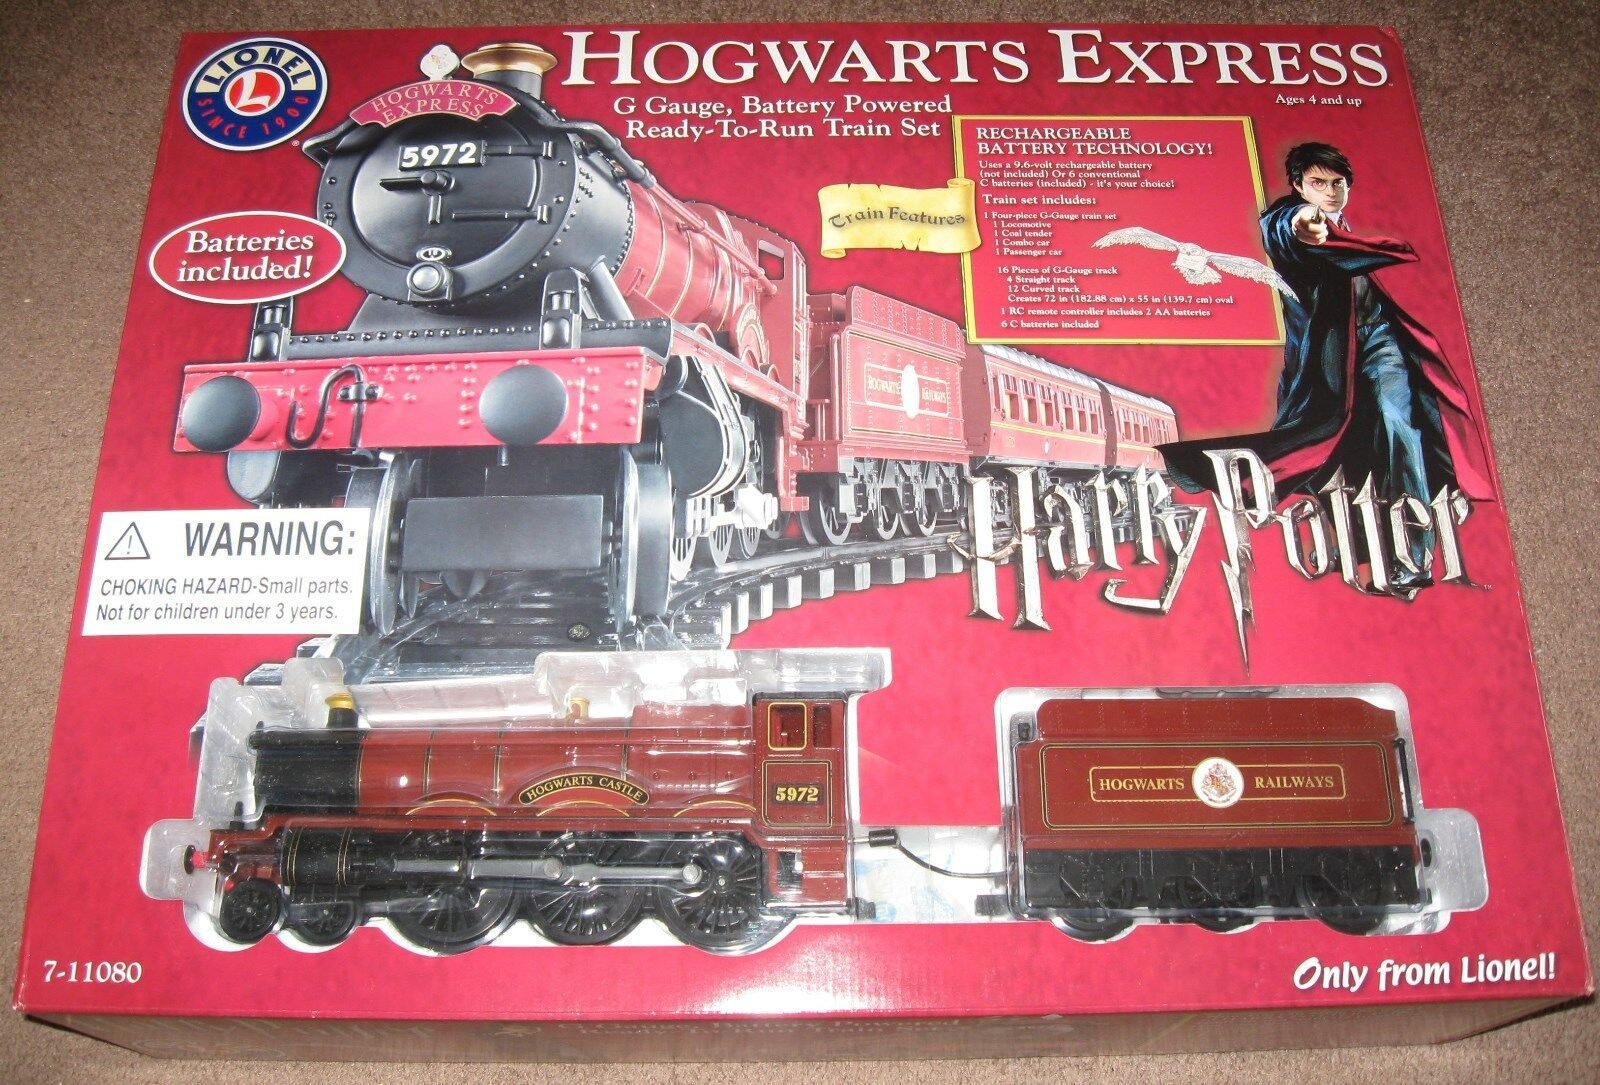 Lionel new 7-11080 Harry Harry Harry Potter Hogwarts Express G-Gauge Battery-operated train f2e360